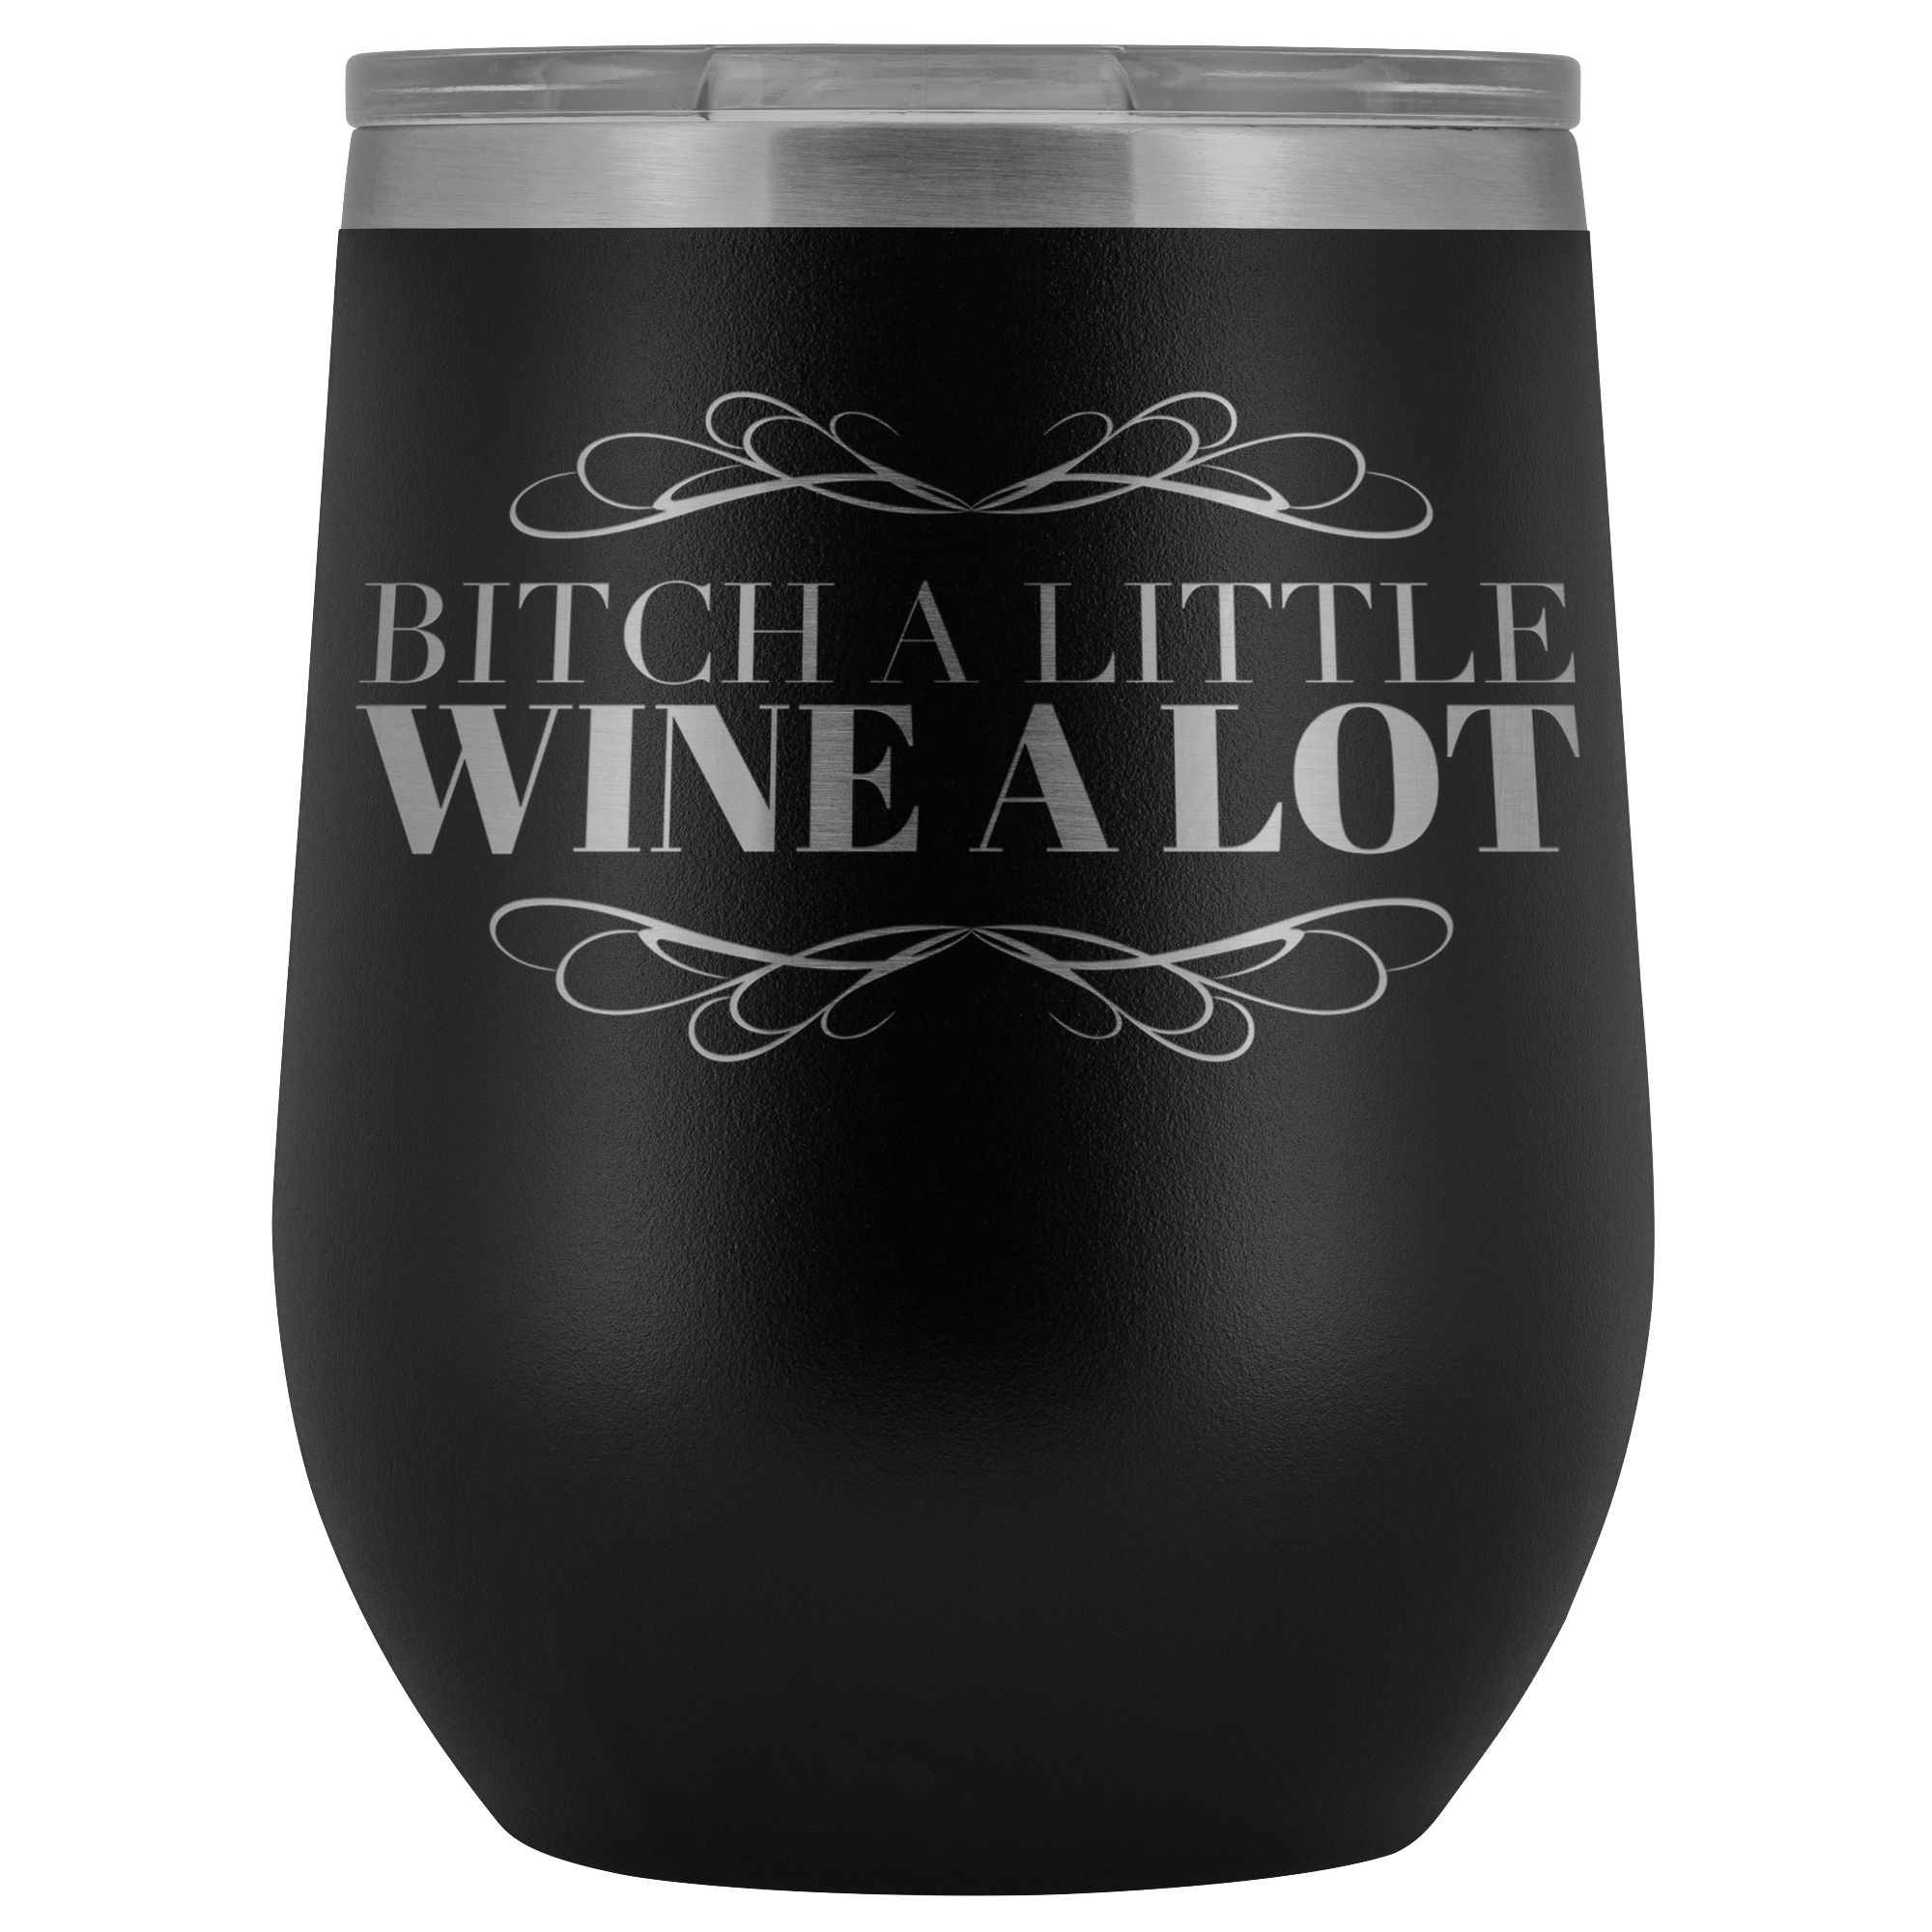 B**** A Little Wine A Lot